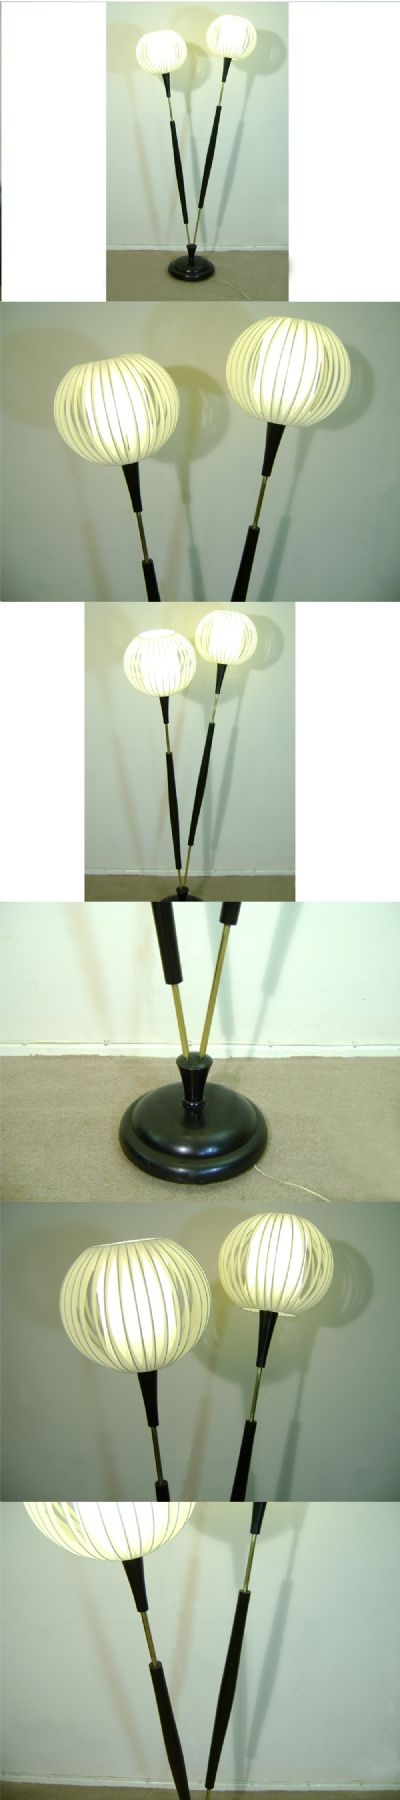 A  highly unusual double stem floor lamp, c1950/60s. Of Ebonised wood with brass fittings and distinctive shades.